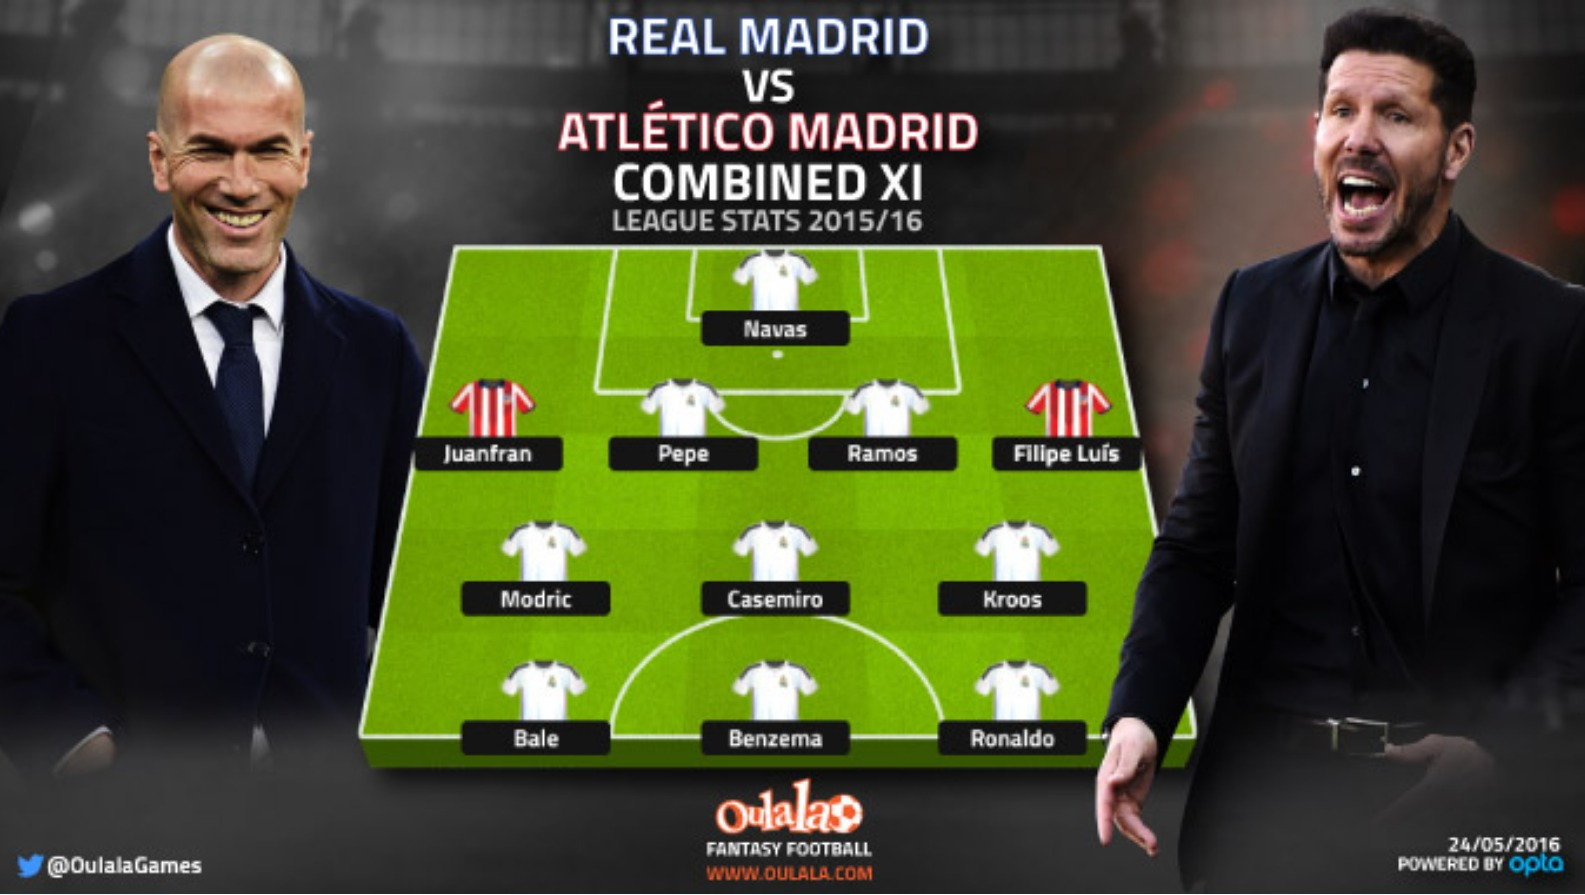 real madrid vs atletico madrid stats